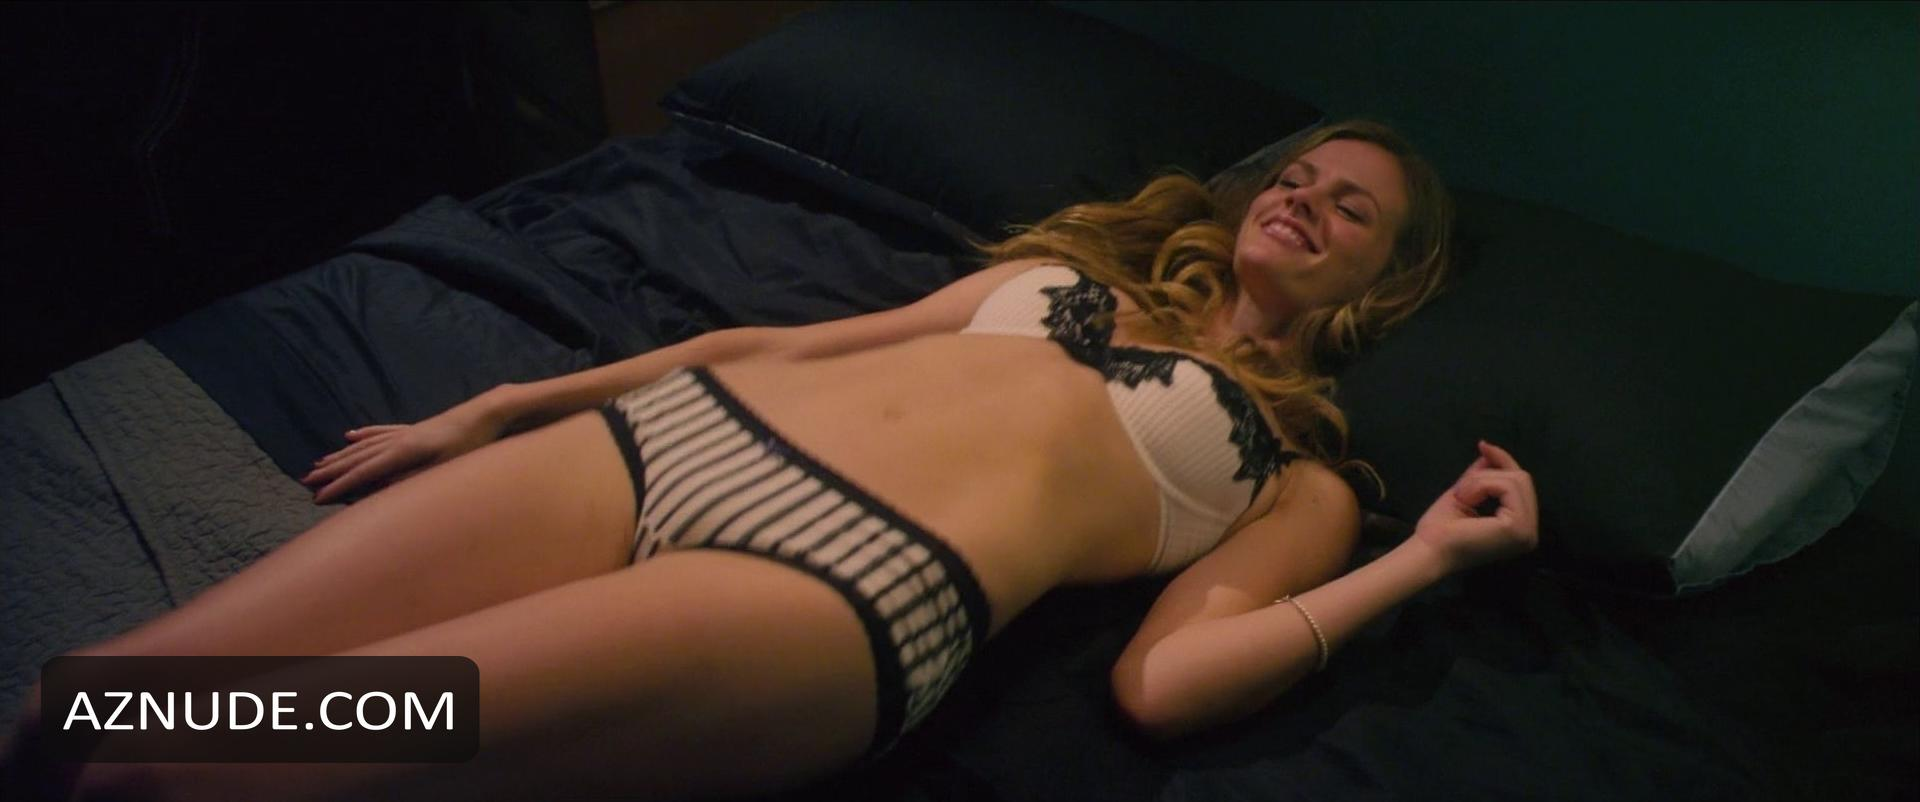 Are mistaken. Brooklyn decker nude real consider, that